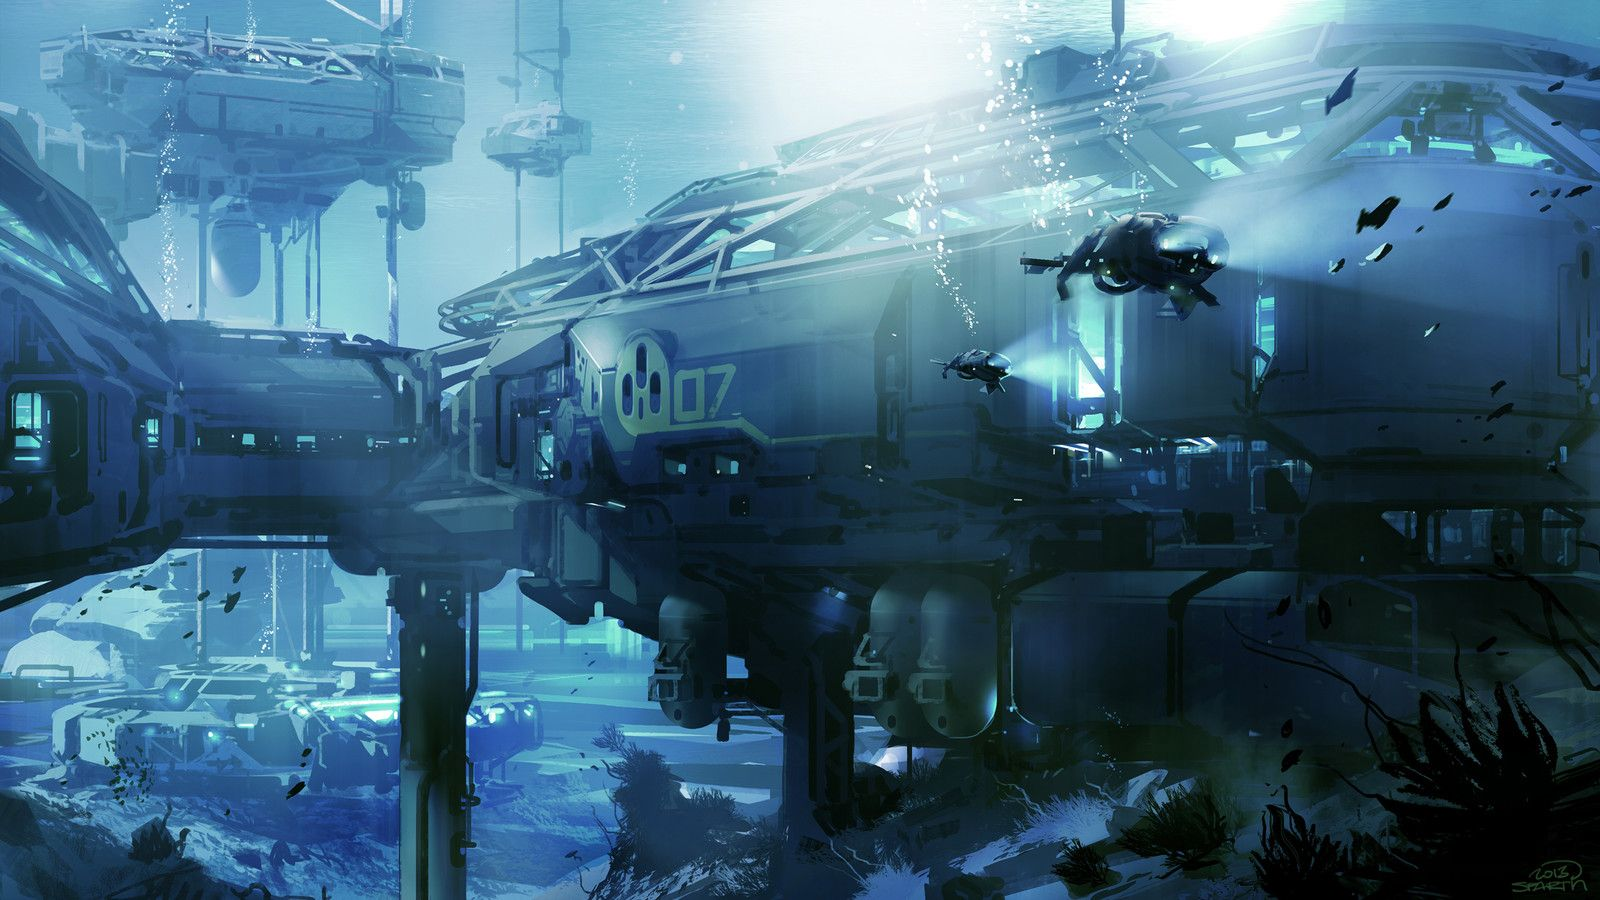 Halo 5 Underwater Station Mp Concept Sparth Environment Concept Art Concept Art Sci Fi Concept Art